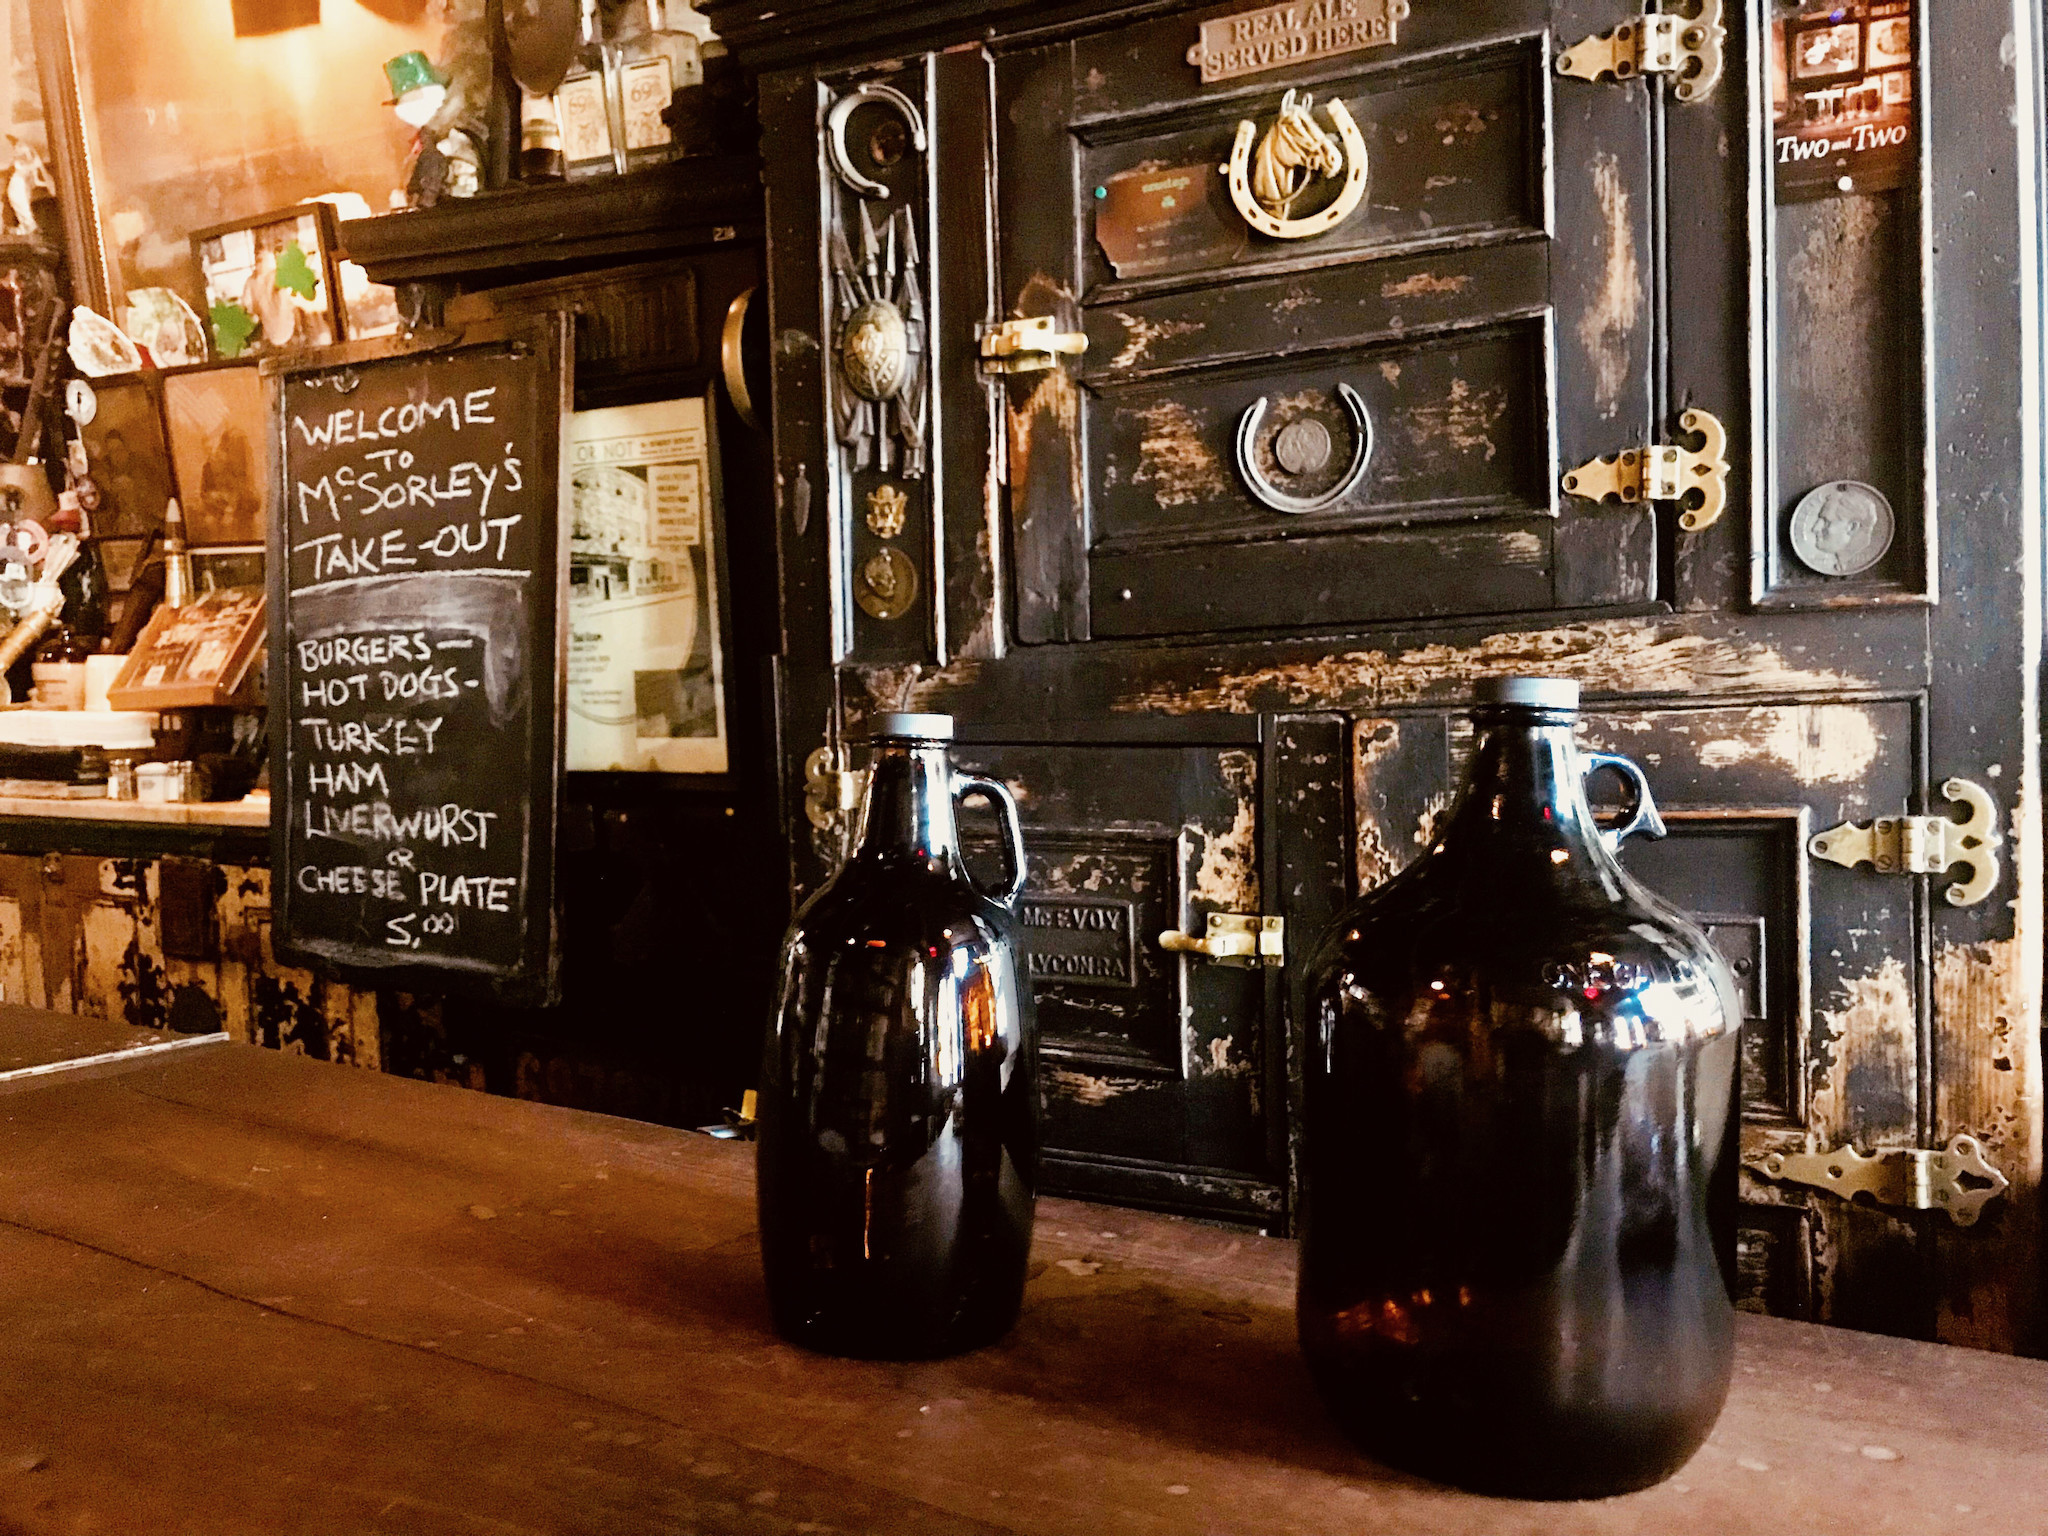 McSorley's, America's oldest Irish pub, is now offering growlers to-go